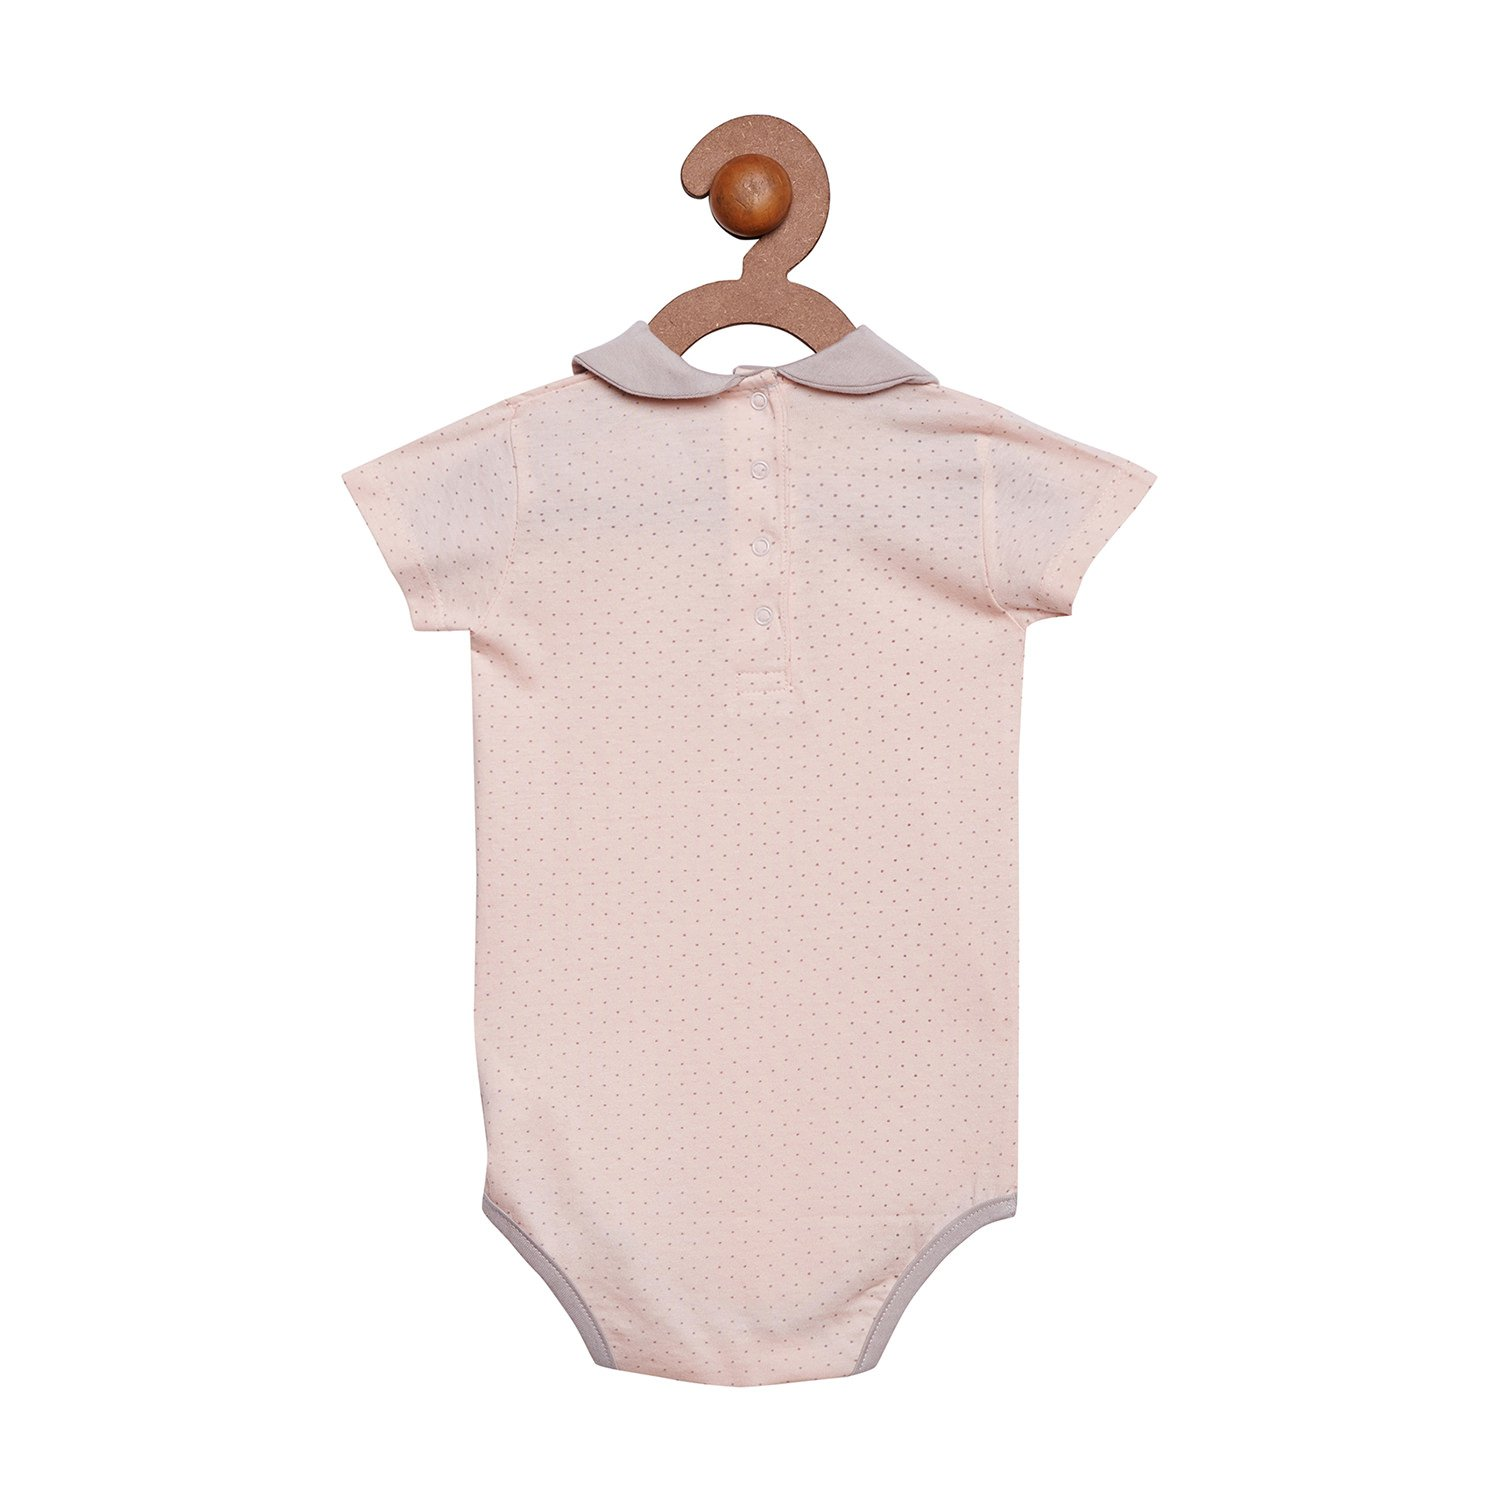 9f8a71600 Berrytree Premium Quality Organic Cotton Peter Pan Collar & Short Sleeves  Printed Pattern Onesie: Amazon.in: Clothing & Accessories